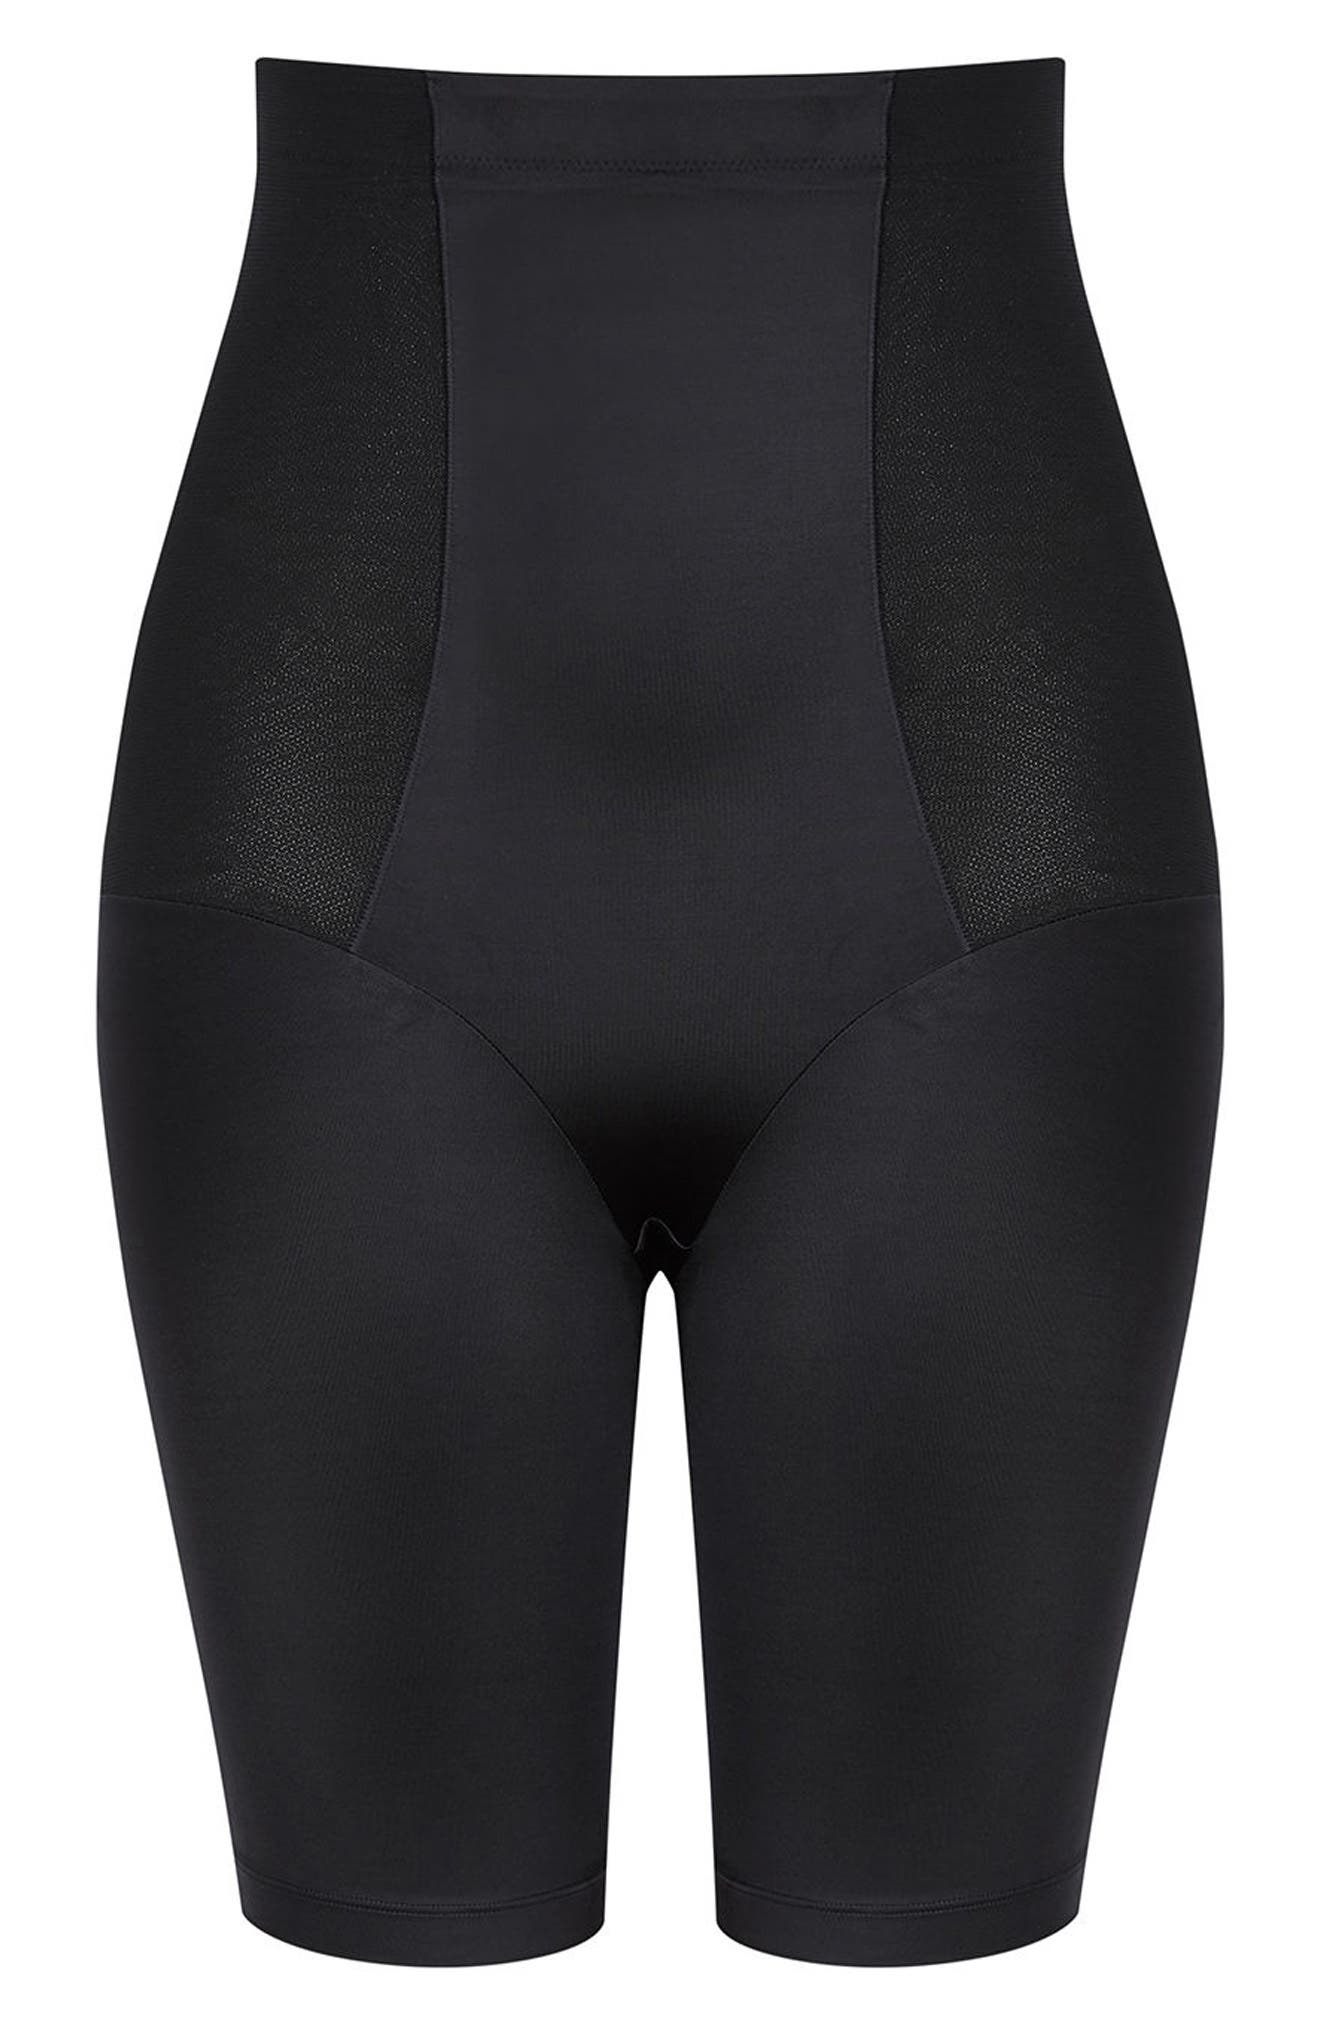 Alternate Image 3  - City Chic Smooth & Chic Thigh Shaper (Plus Size)